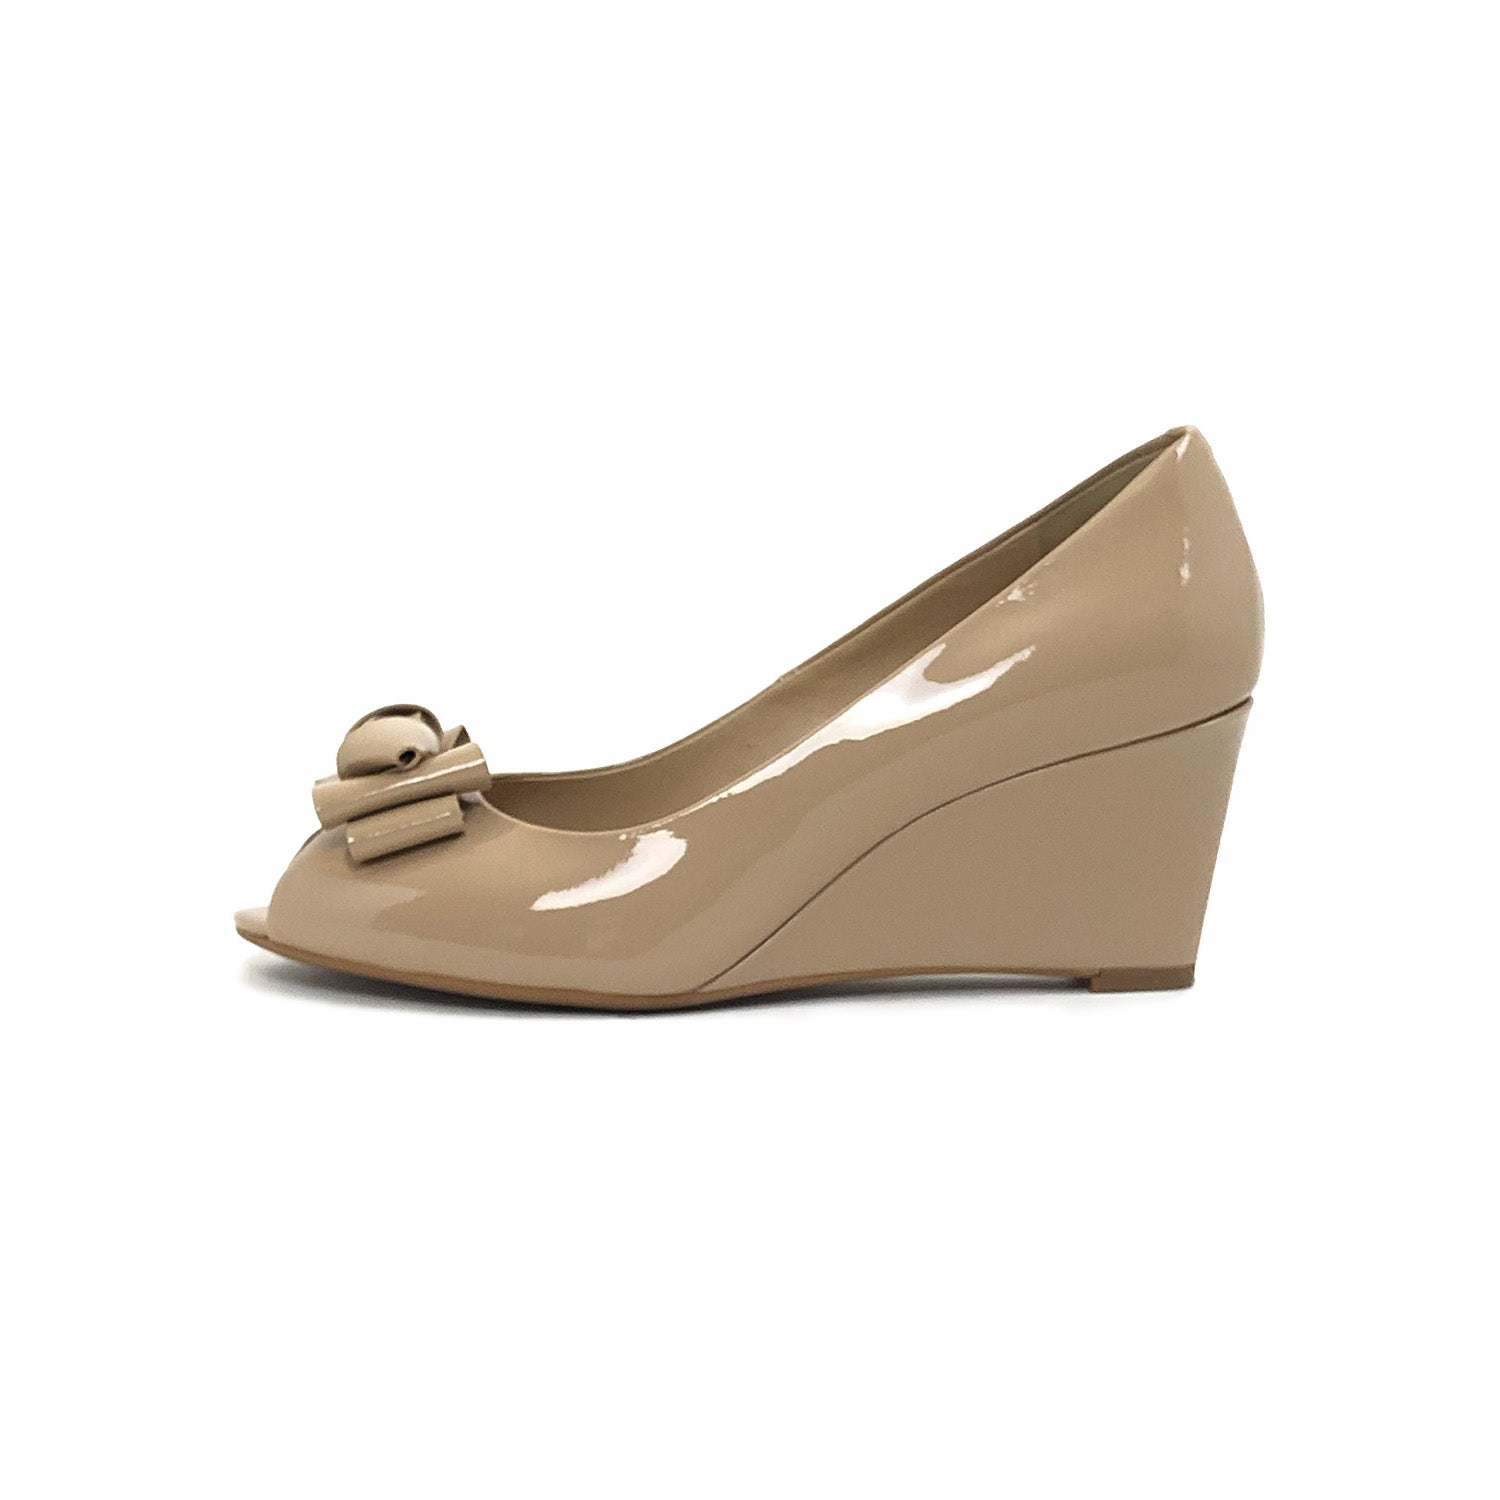 Tory Burch Patent Bow Wedge